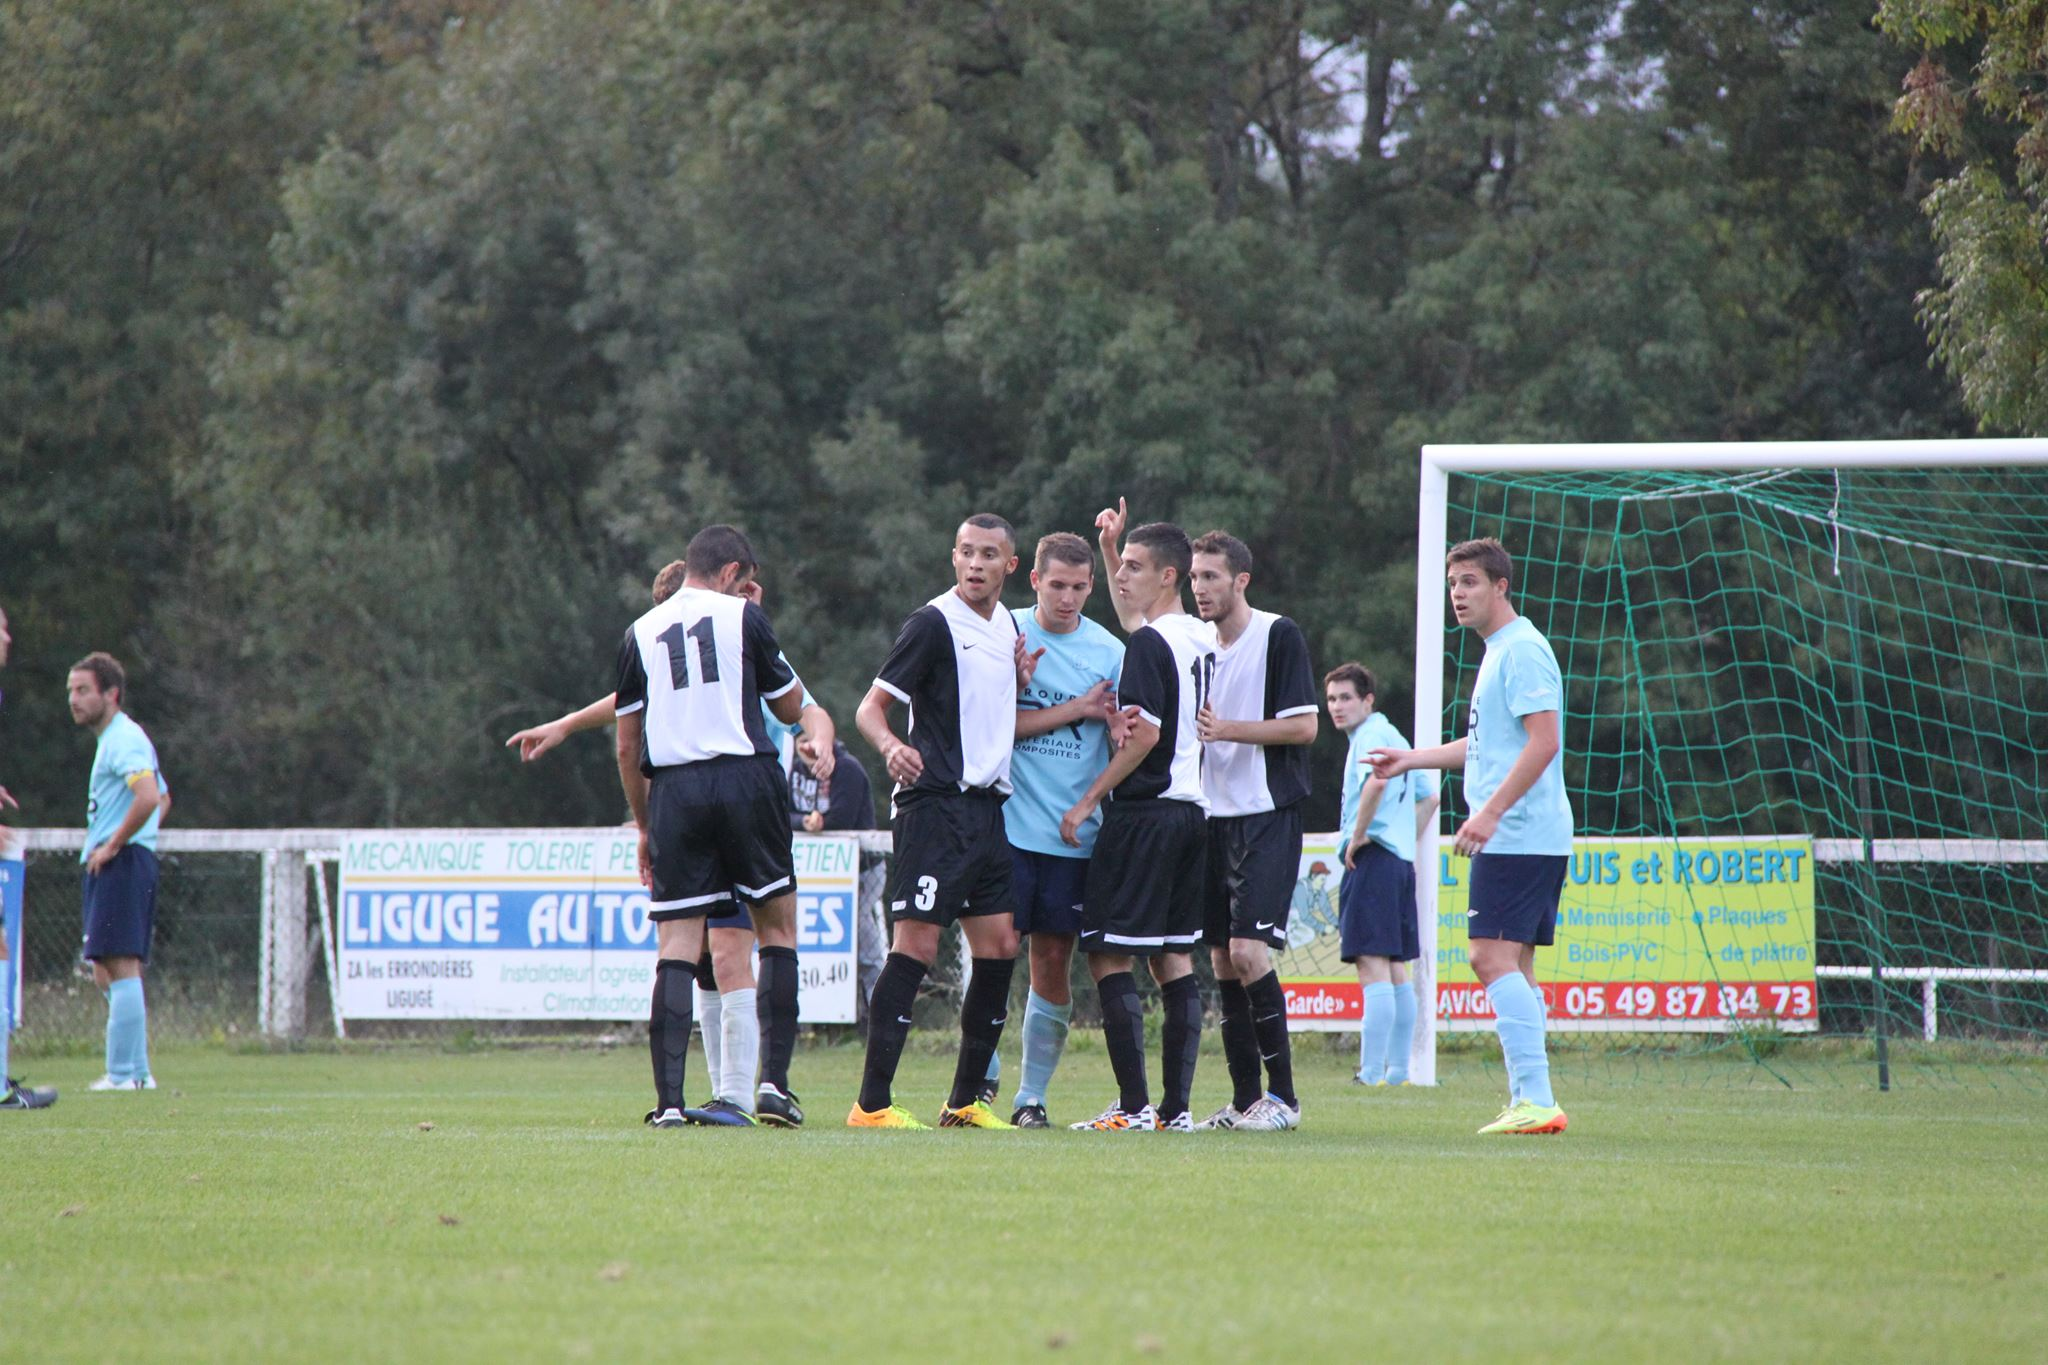 R sultat coupe de france la ligug ennela ligug enne - Resultats coupe de france de football ...